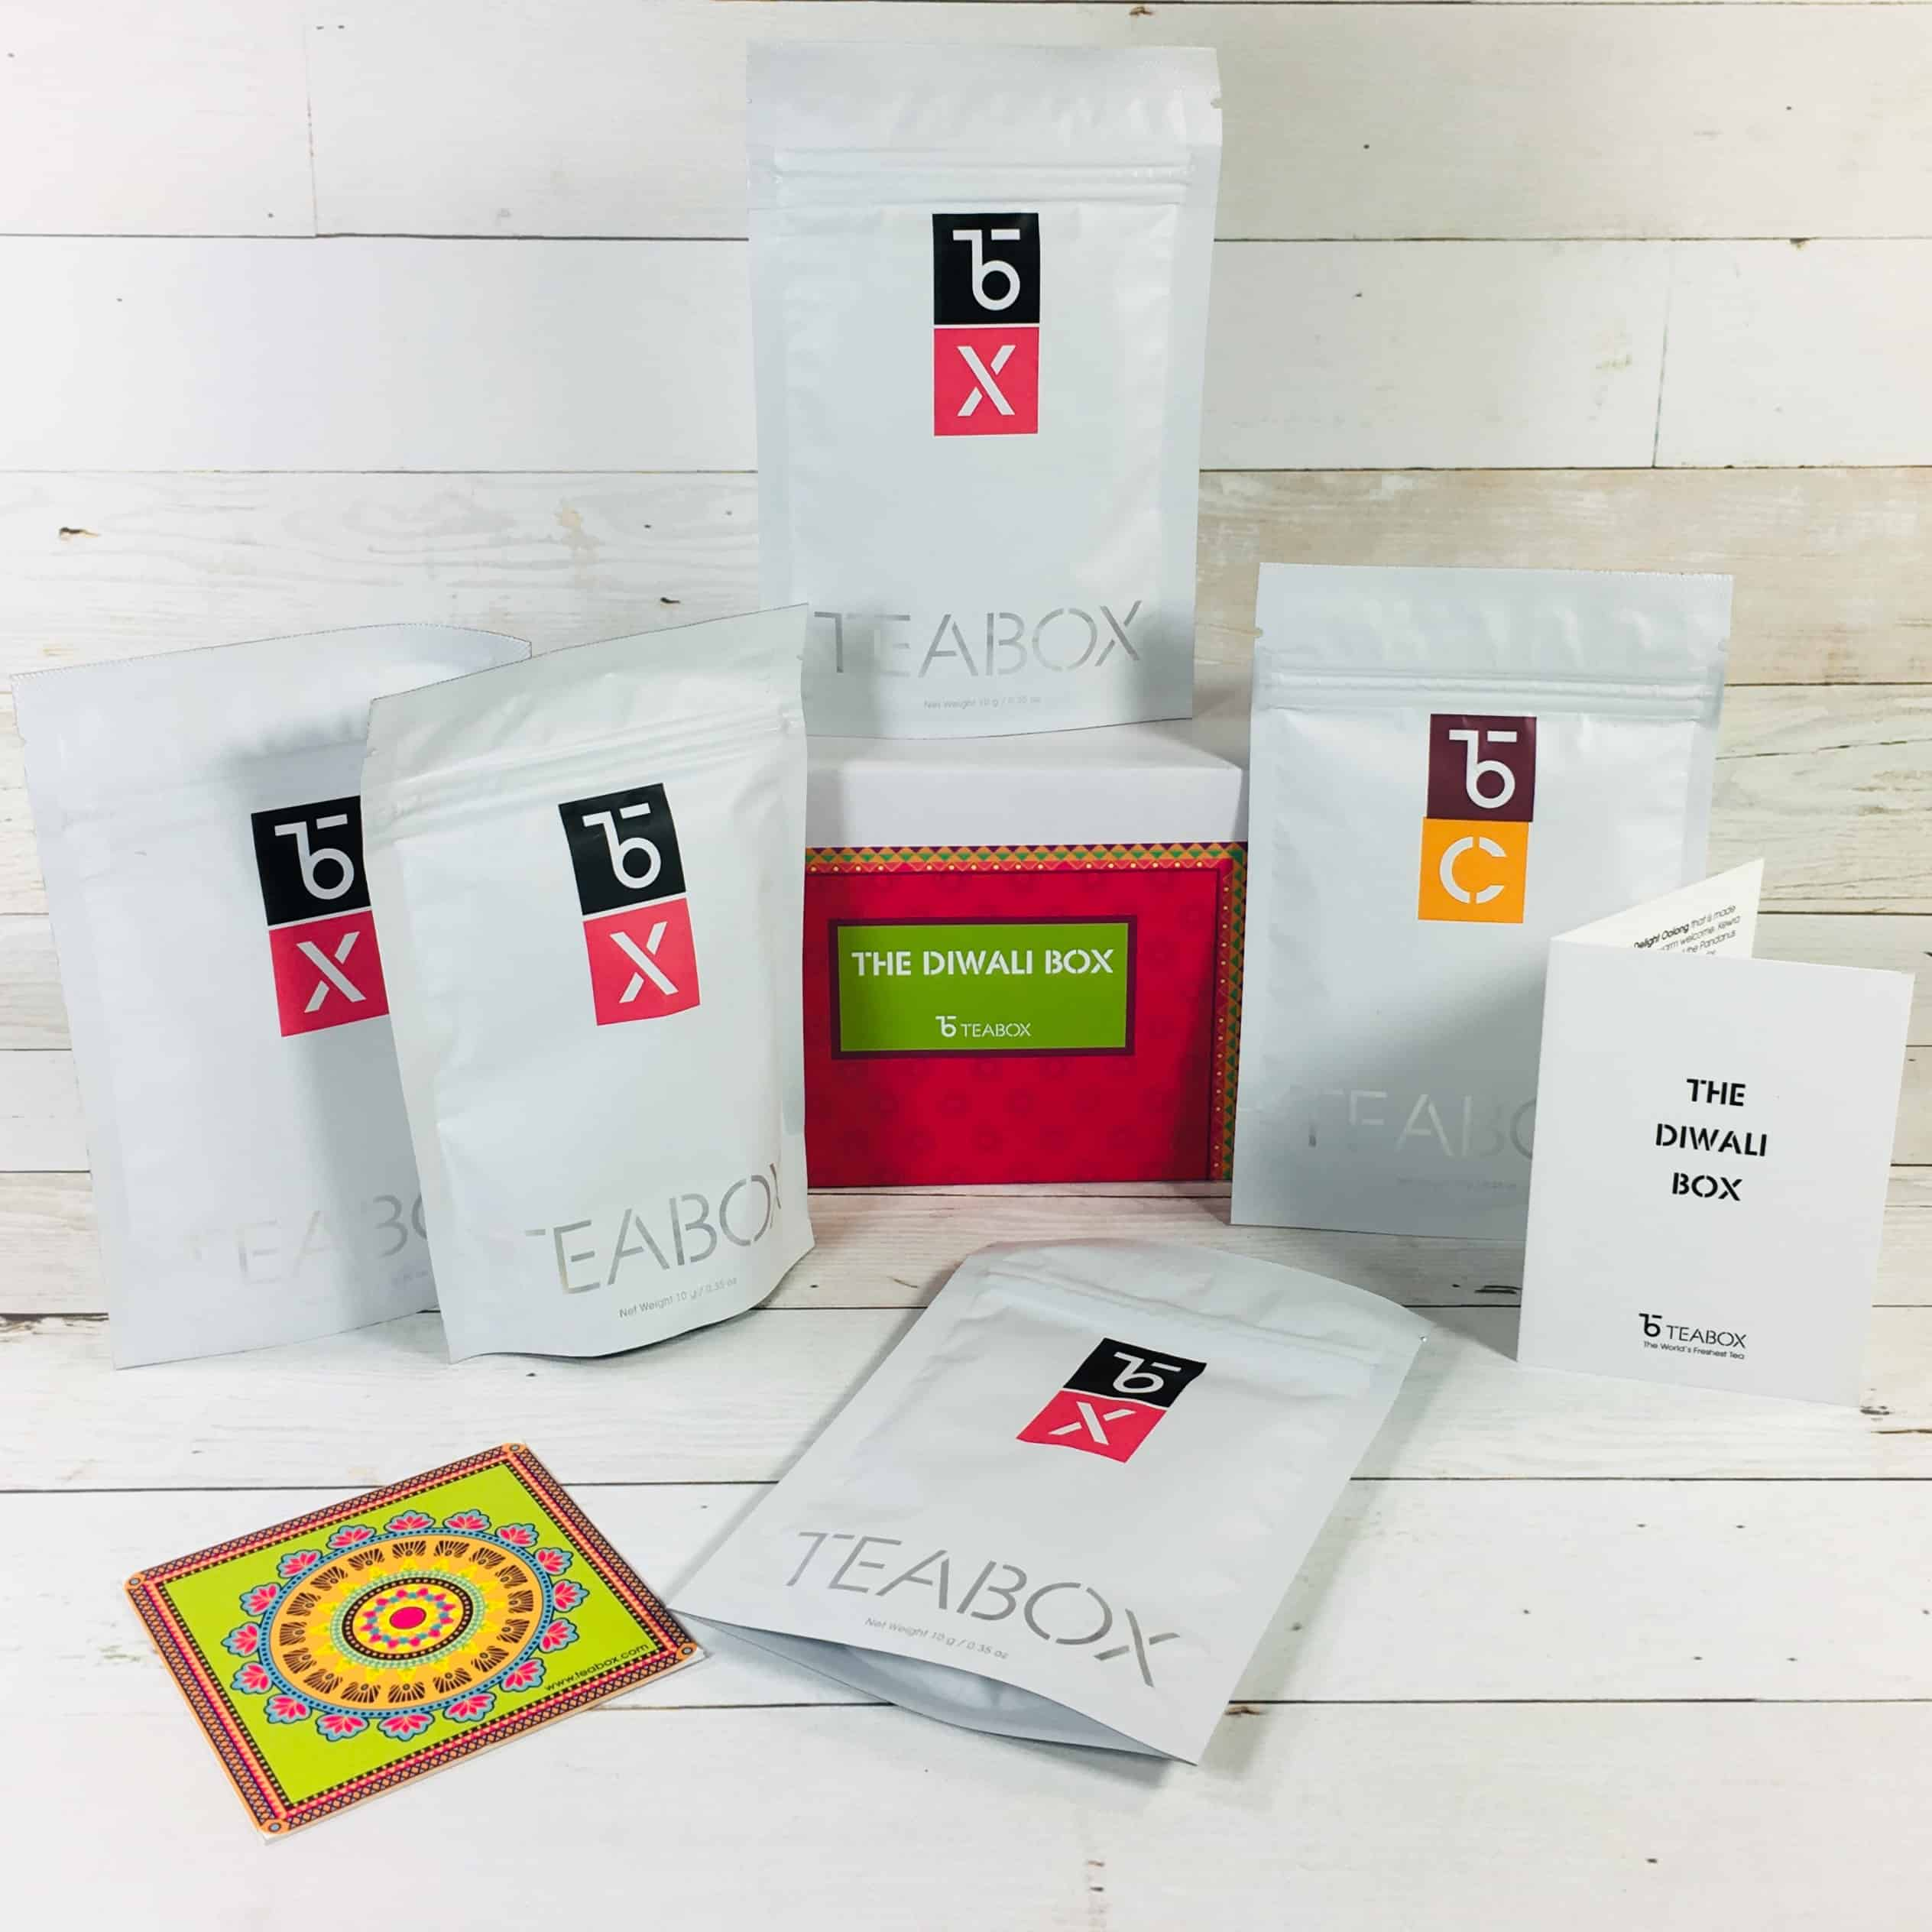 Teabox October 2018 Subscription Review & Coupon